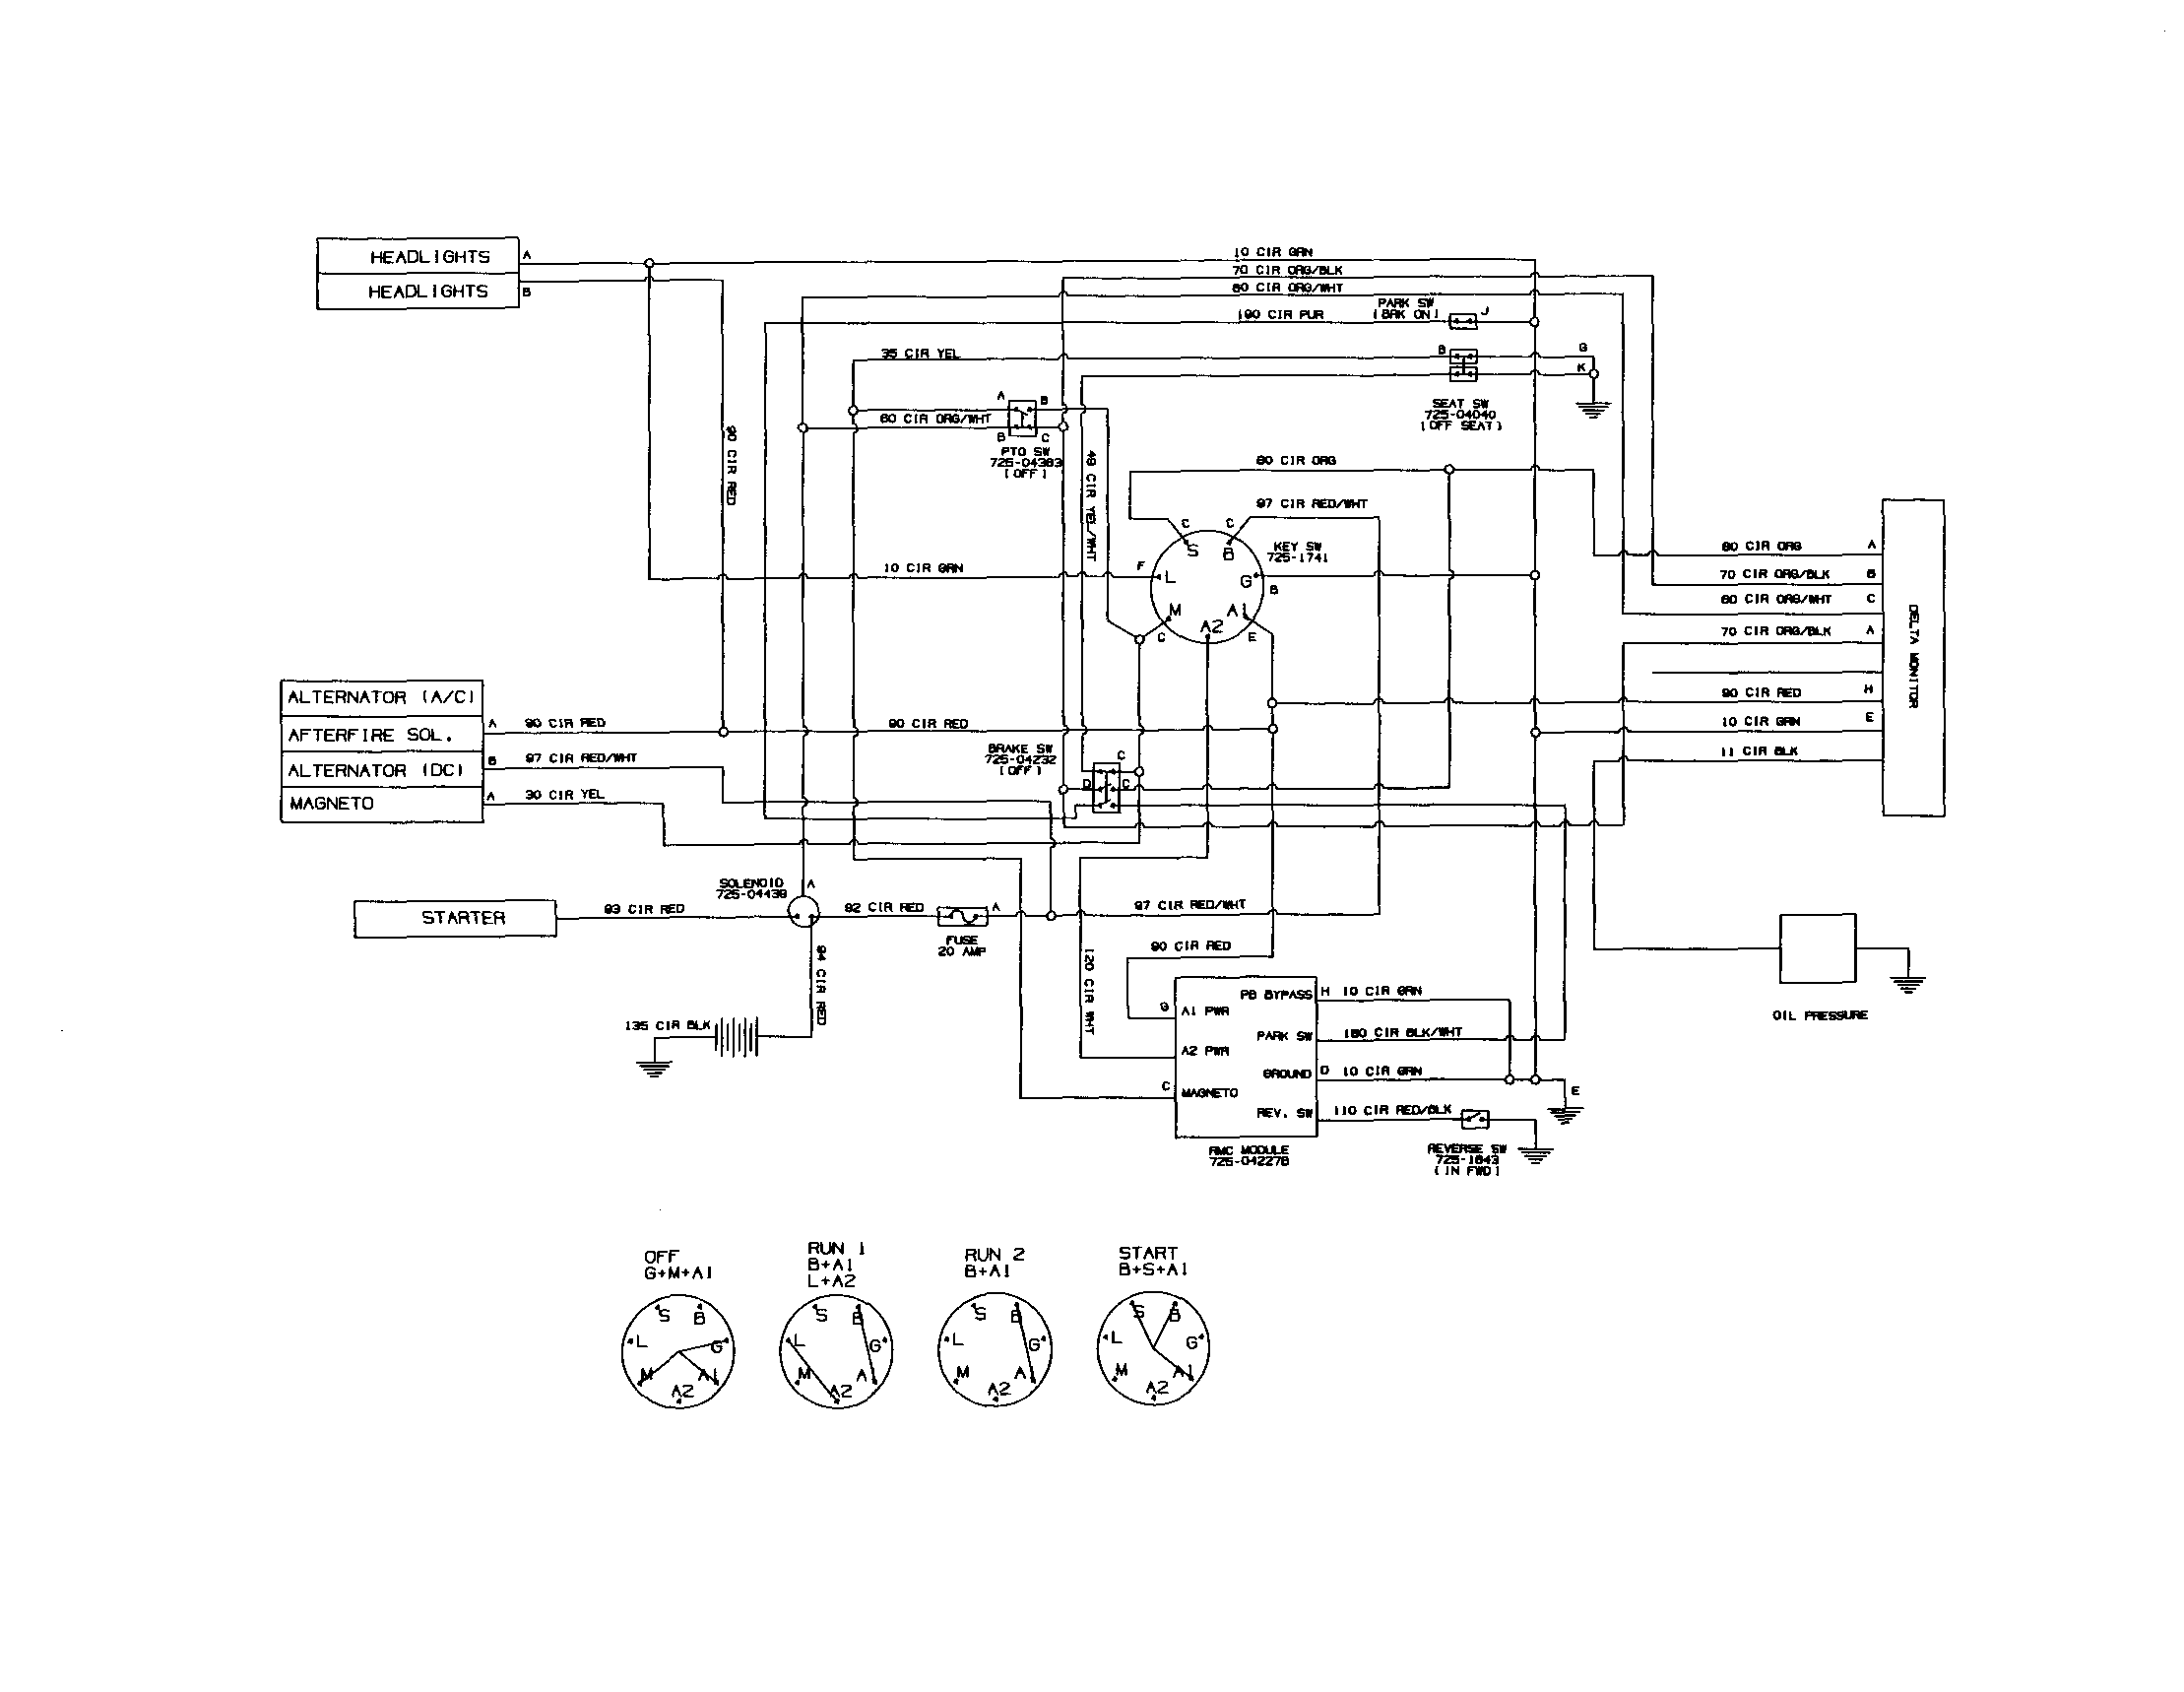 mtd riding mower charging diagram mtd mower parts diagram wiring MTD Yard Machines Parts hight resolution of mtd wiring diagram manual wiring diagrams huskee wiring diagrams mtd model 13ax90yt001 lawn